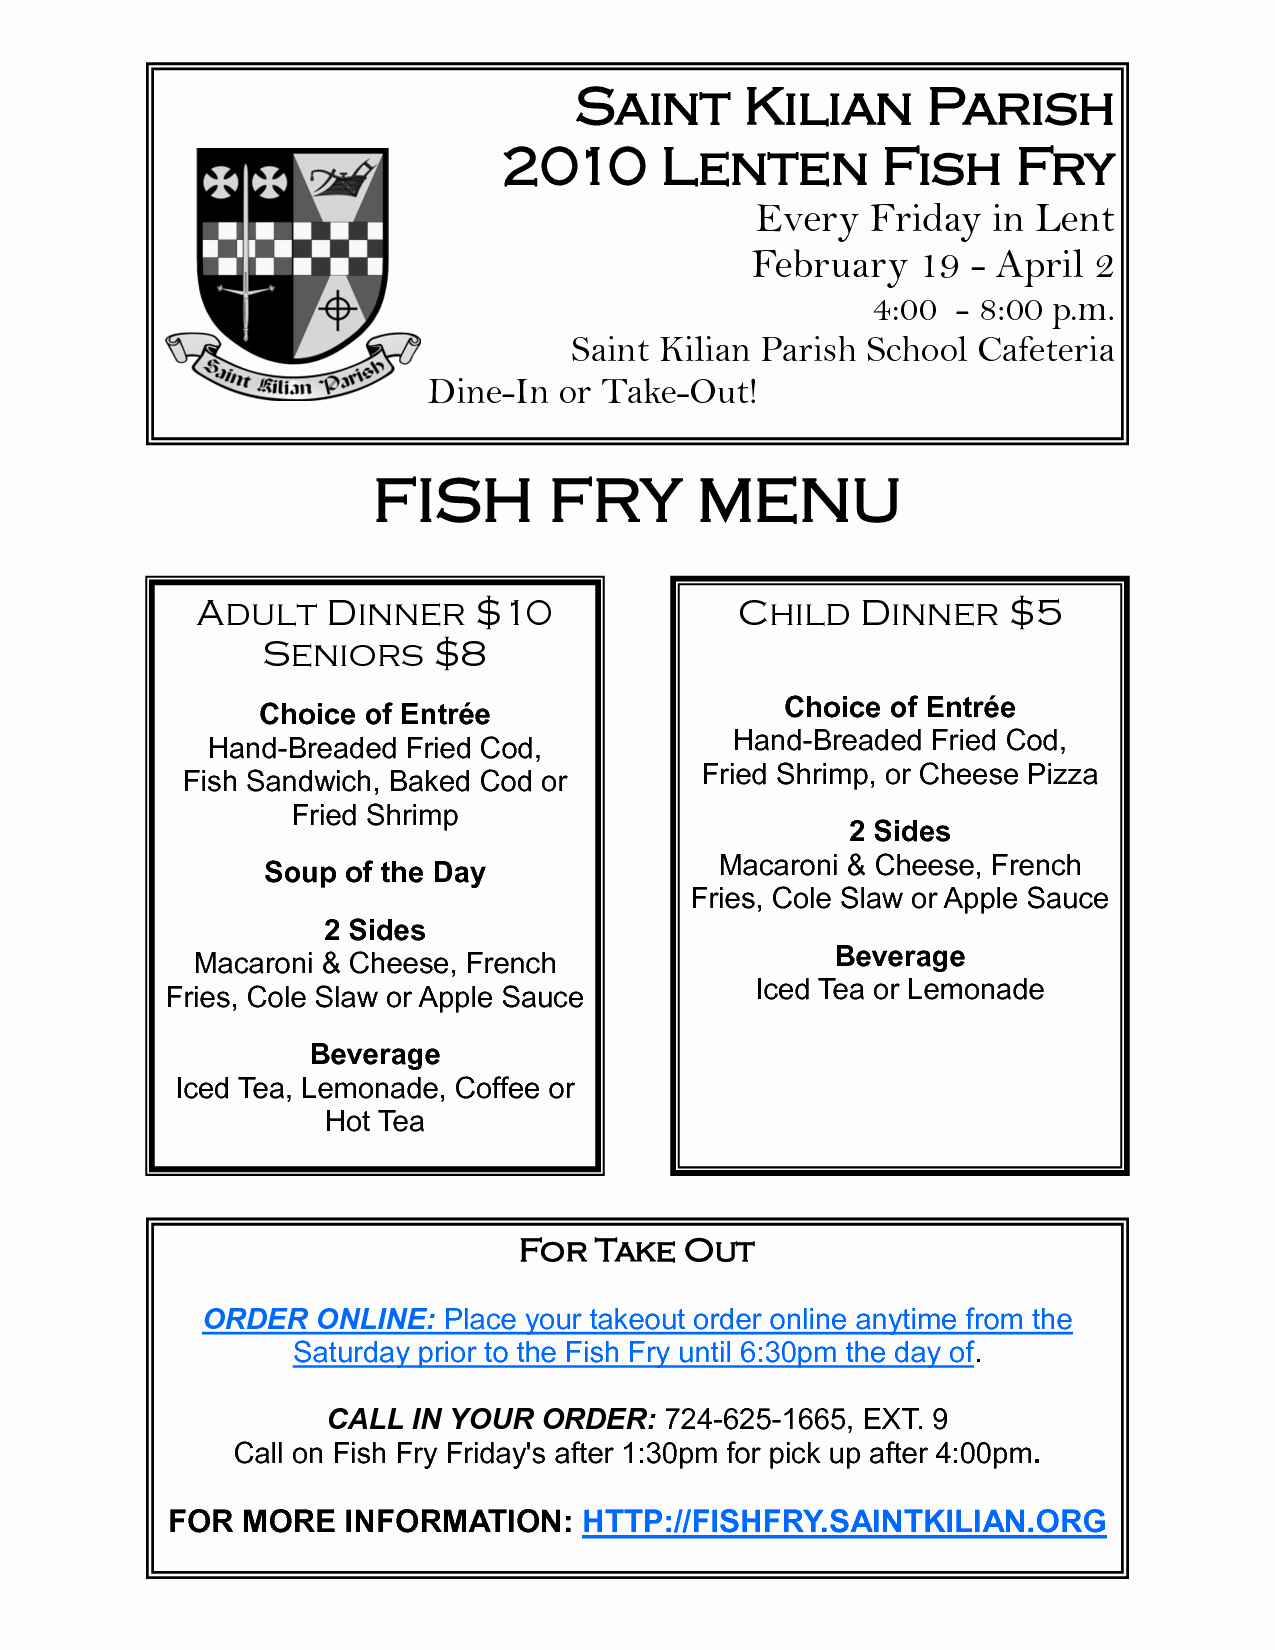 Free Fish Fry Flyer Templates Luxury 5 Best Of Fish Fry Flyer Template Fish Fry